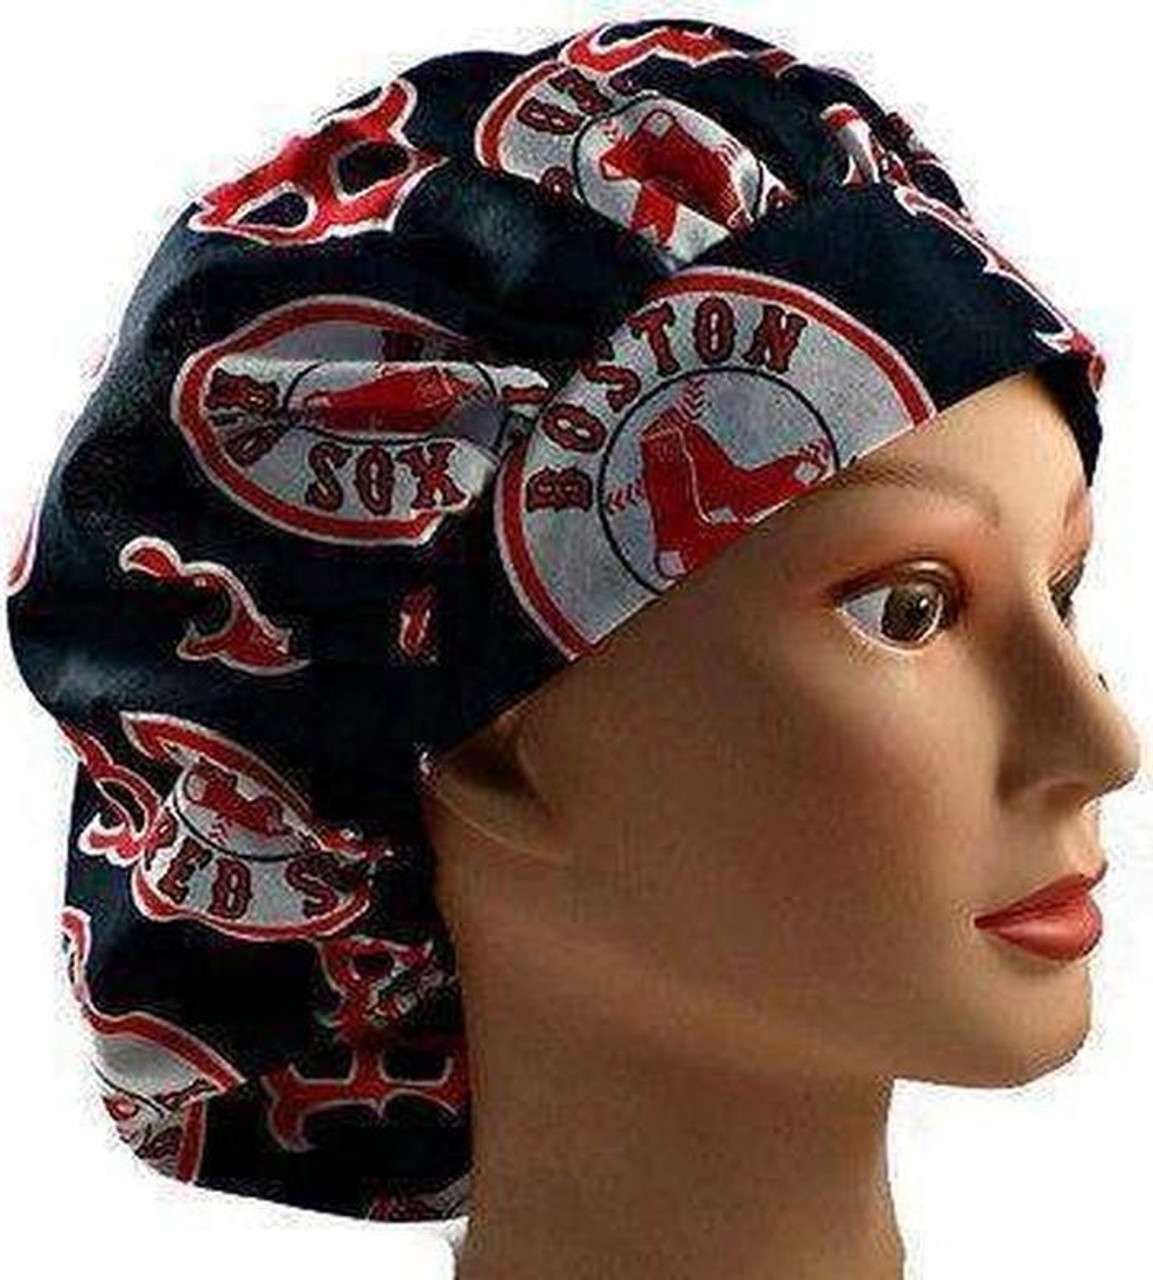 womens-adjustable-bouffant-surgical-scrub-hat-cap-made-with-boston-red-sox-fabric-w-elastic-and-cord-lock__04957.1522966722.jpg